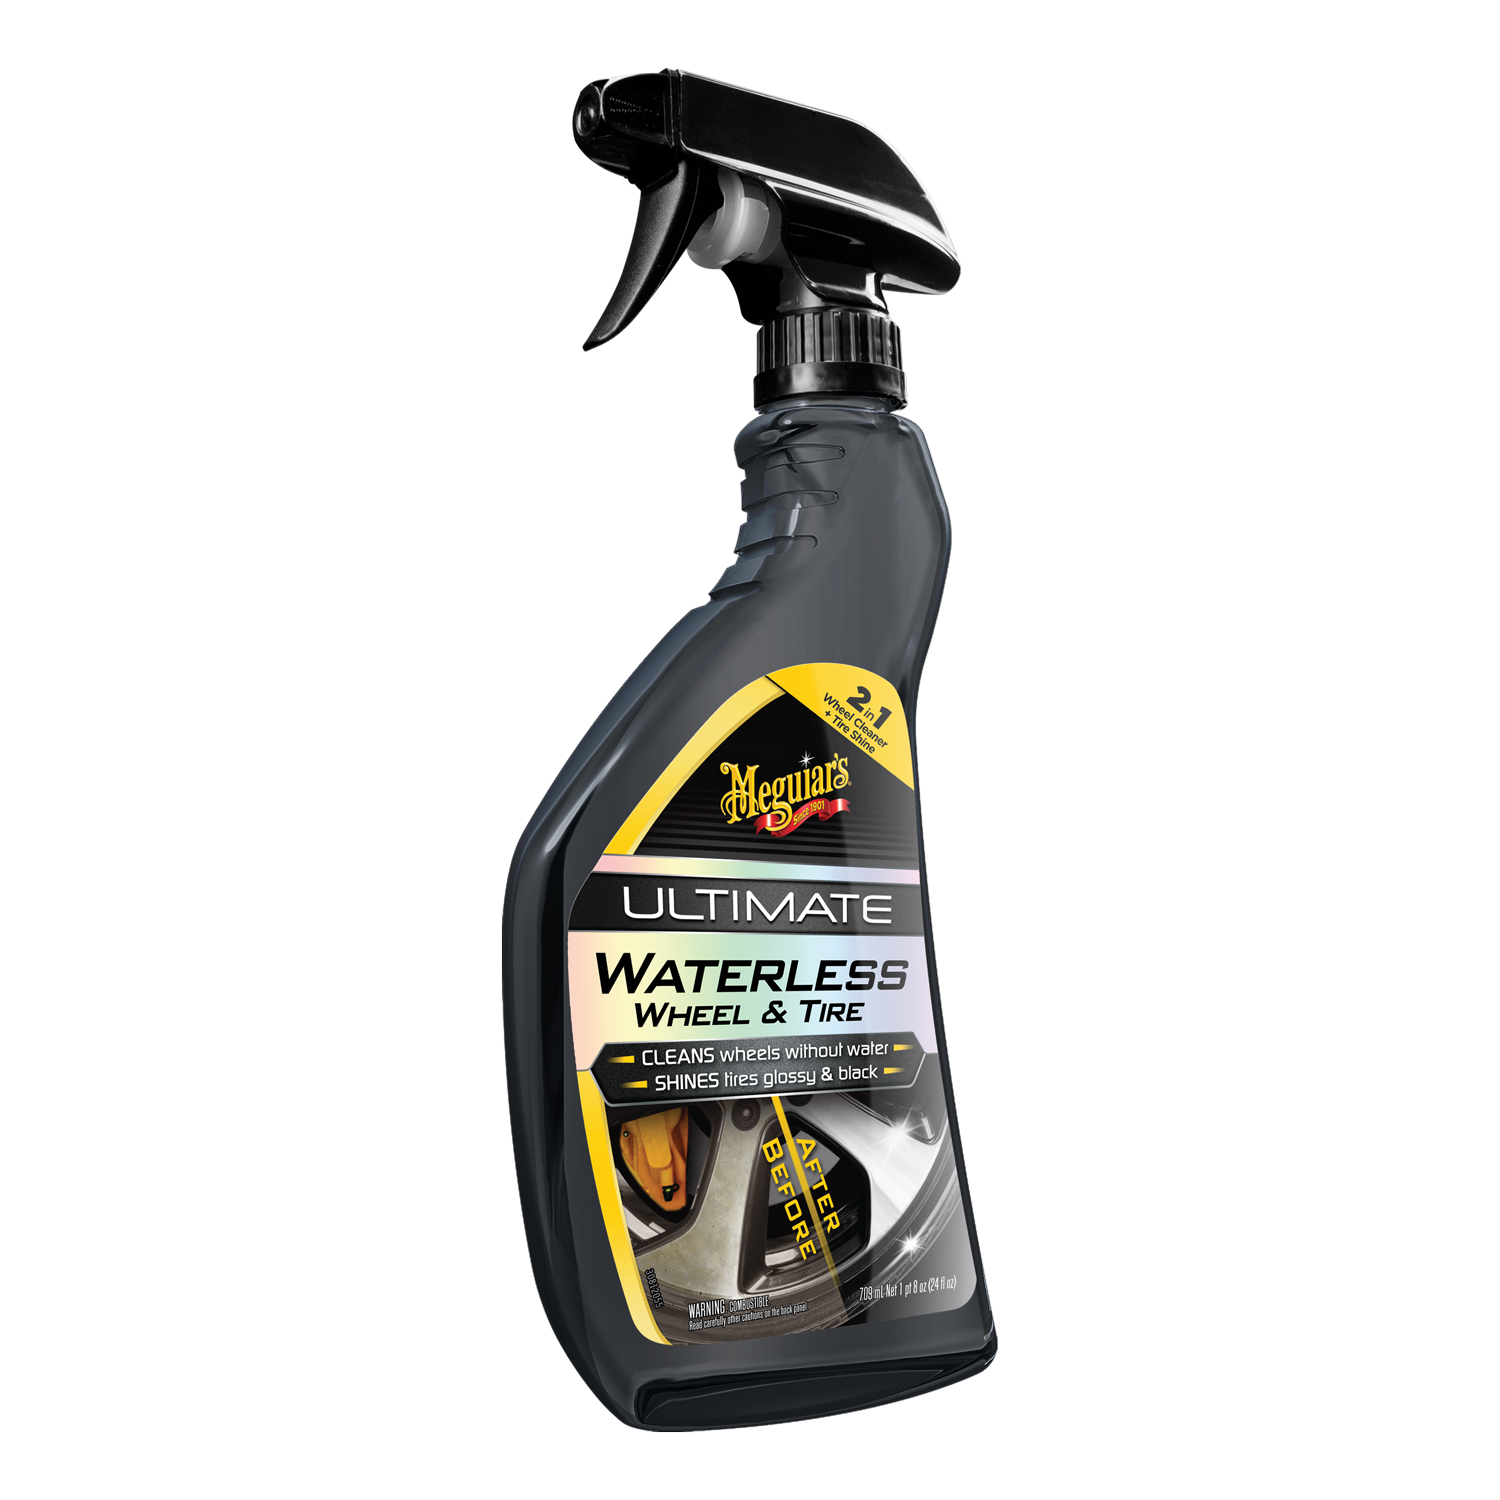 Meguiar's® Ultimate Waterless Wheel & Tire – Wheel Cleaner & Tire Dressing in One - G190424, 24 oz